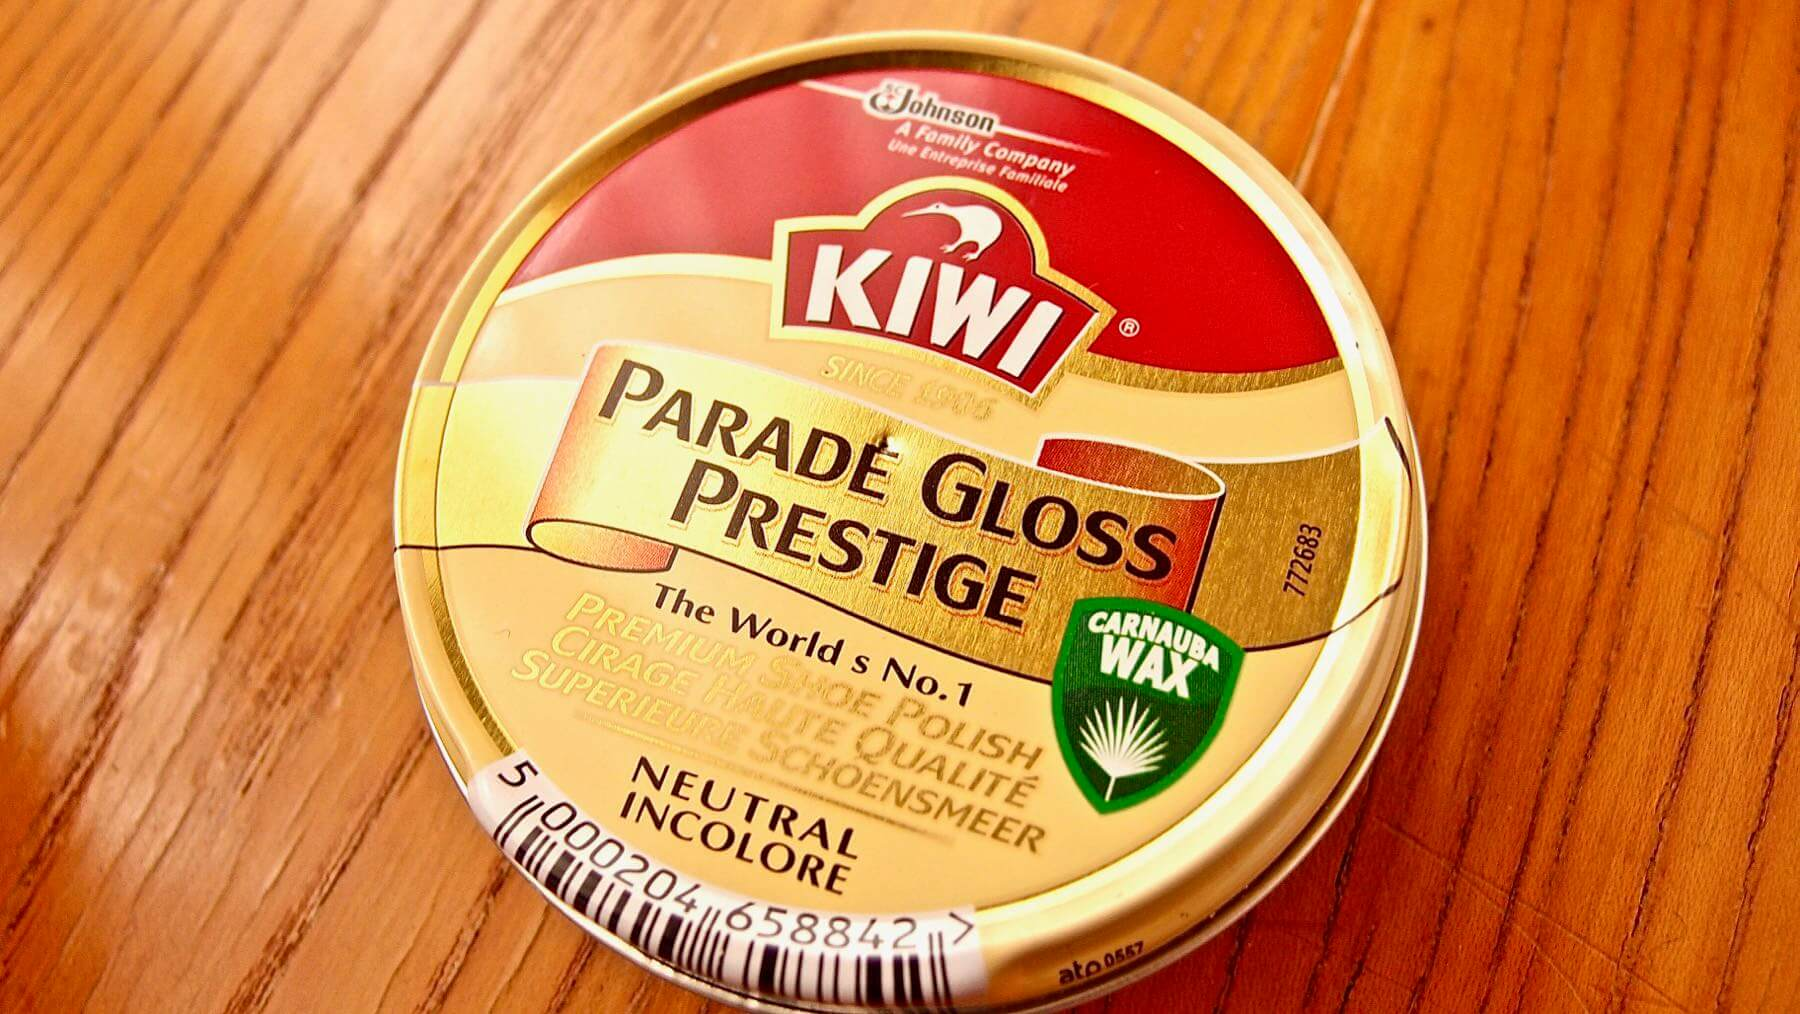 02KIWI PARADE GLOSS NEUTRAL